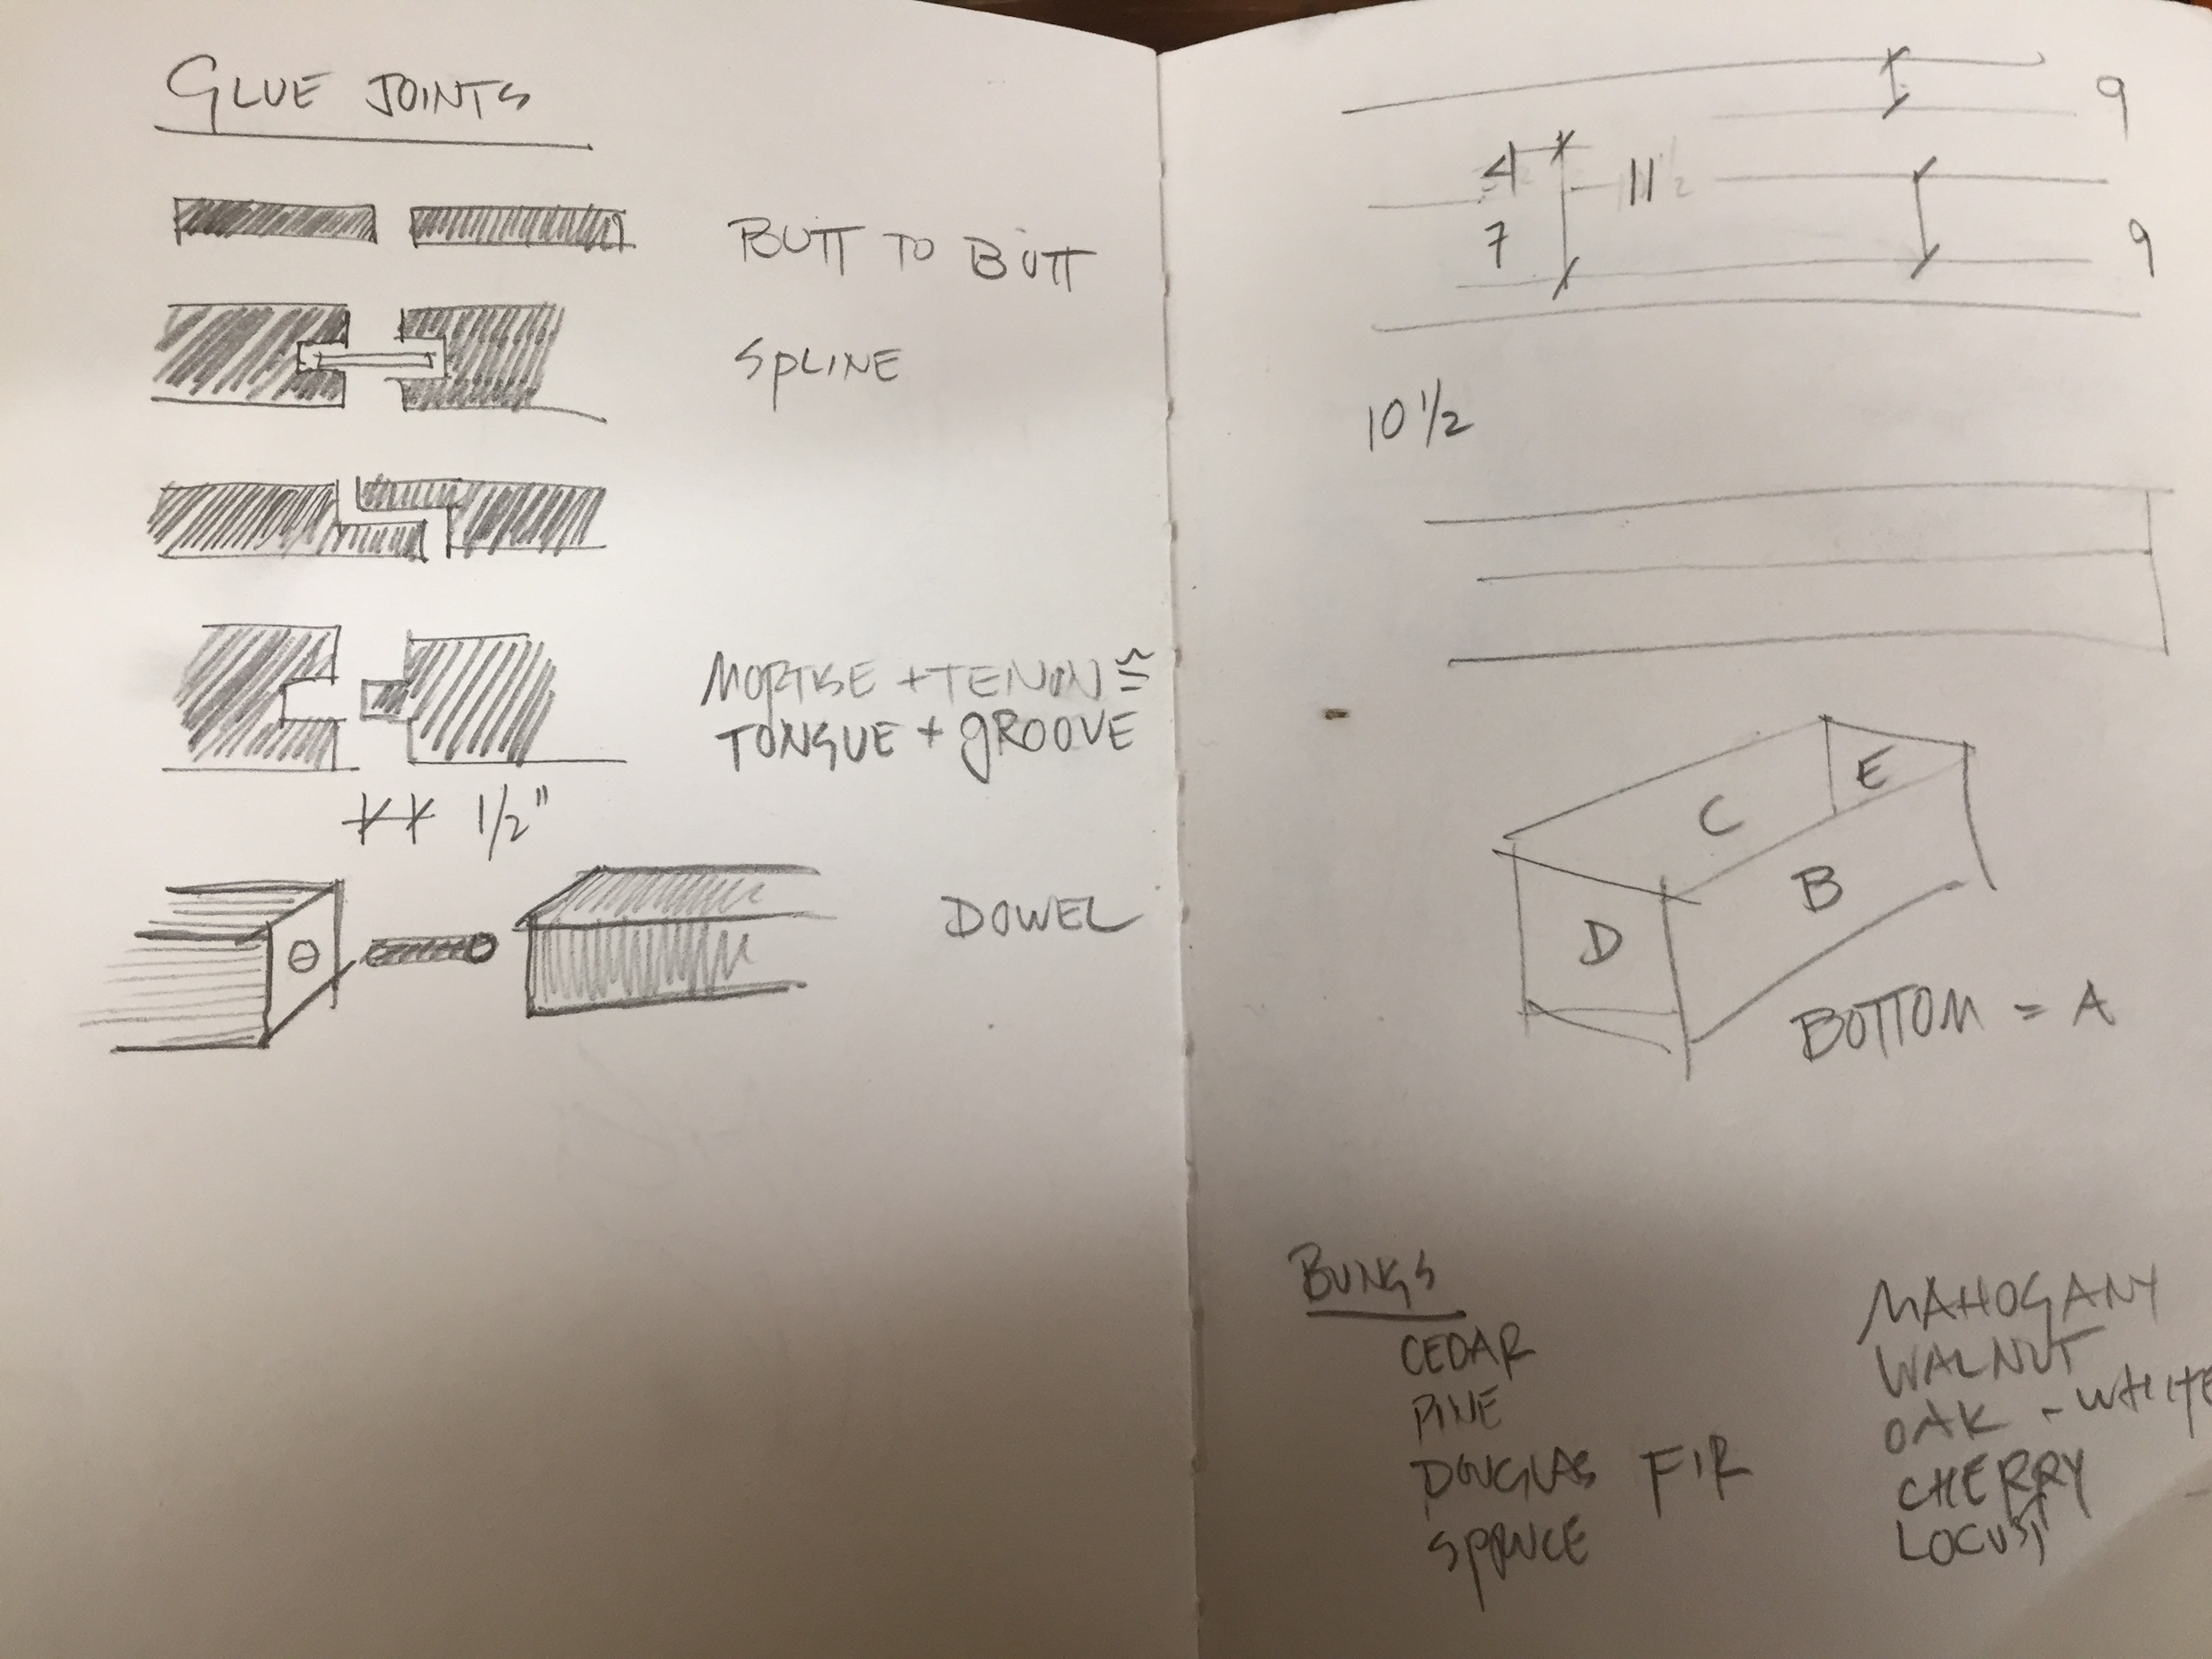 Sketches of different types of glue joints in preparation for building her toolbox